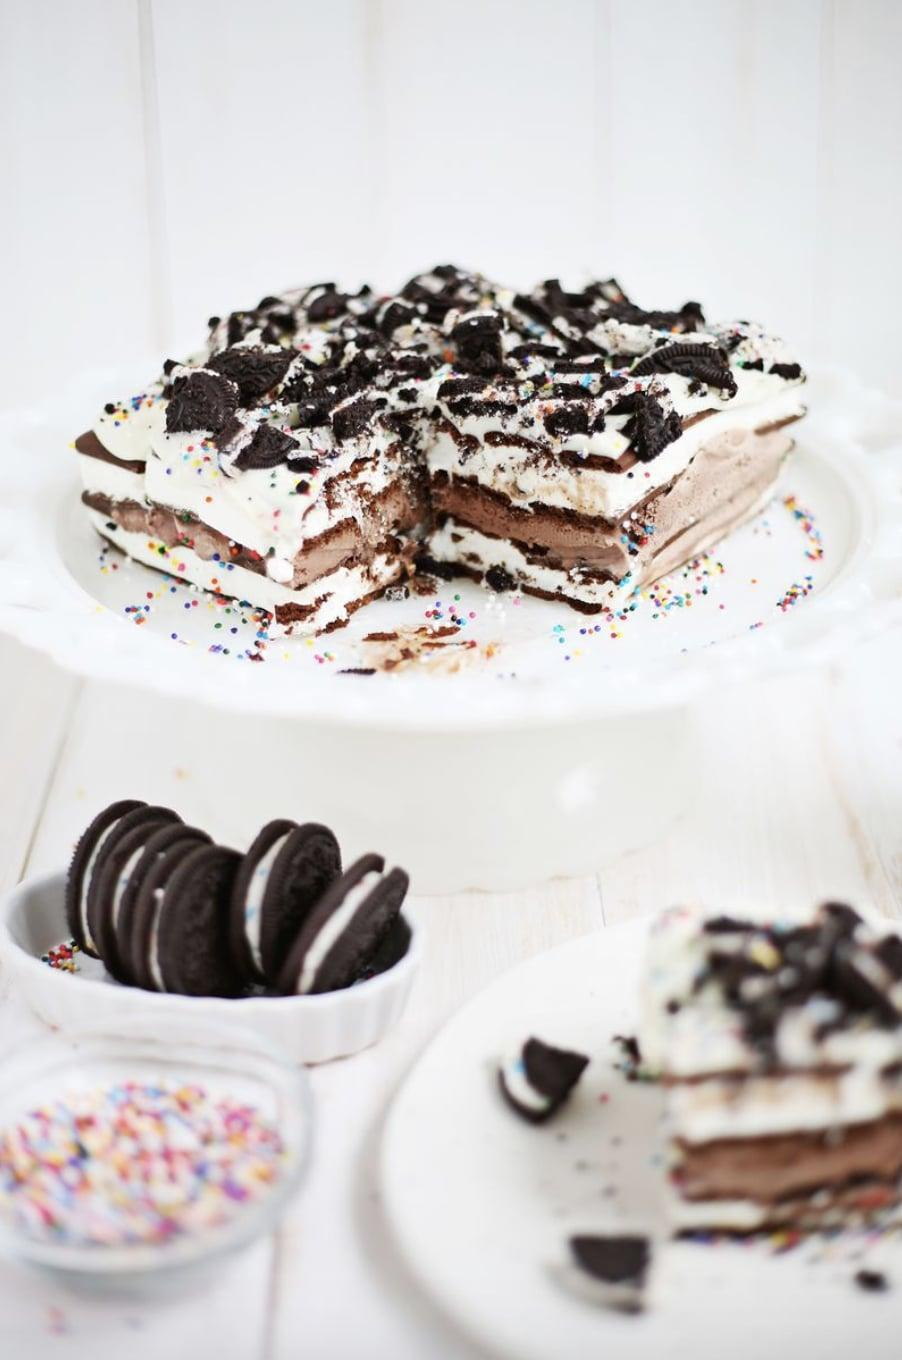 """<p>As the weather starts to heat up, at-home bakers are looking for something to cool them off. Cue ice cream cakes. Rich, cold, and oh-so sweet, these treats are the best of the bunch.</p> <p><strong>Get the recipe</strong>: <a href=""""https://abeautifulmess.com/2014/07/easiest-ever-ice-cream-cake.html"""" class=""""link rapid-noclick-resp"""" rel=""""nofollow noopener"""" target=""""_blank"""" data-ylk=""""slk:ice cream cake"""">ice cream cake</a></p>"""